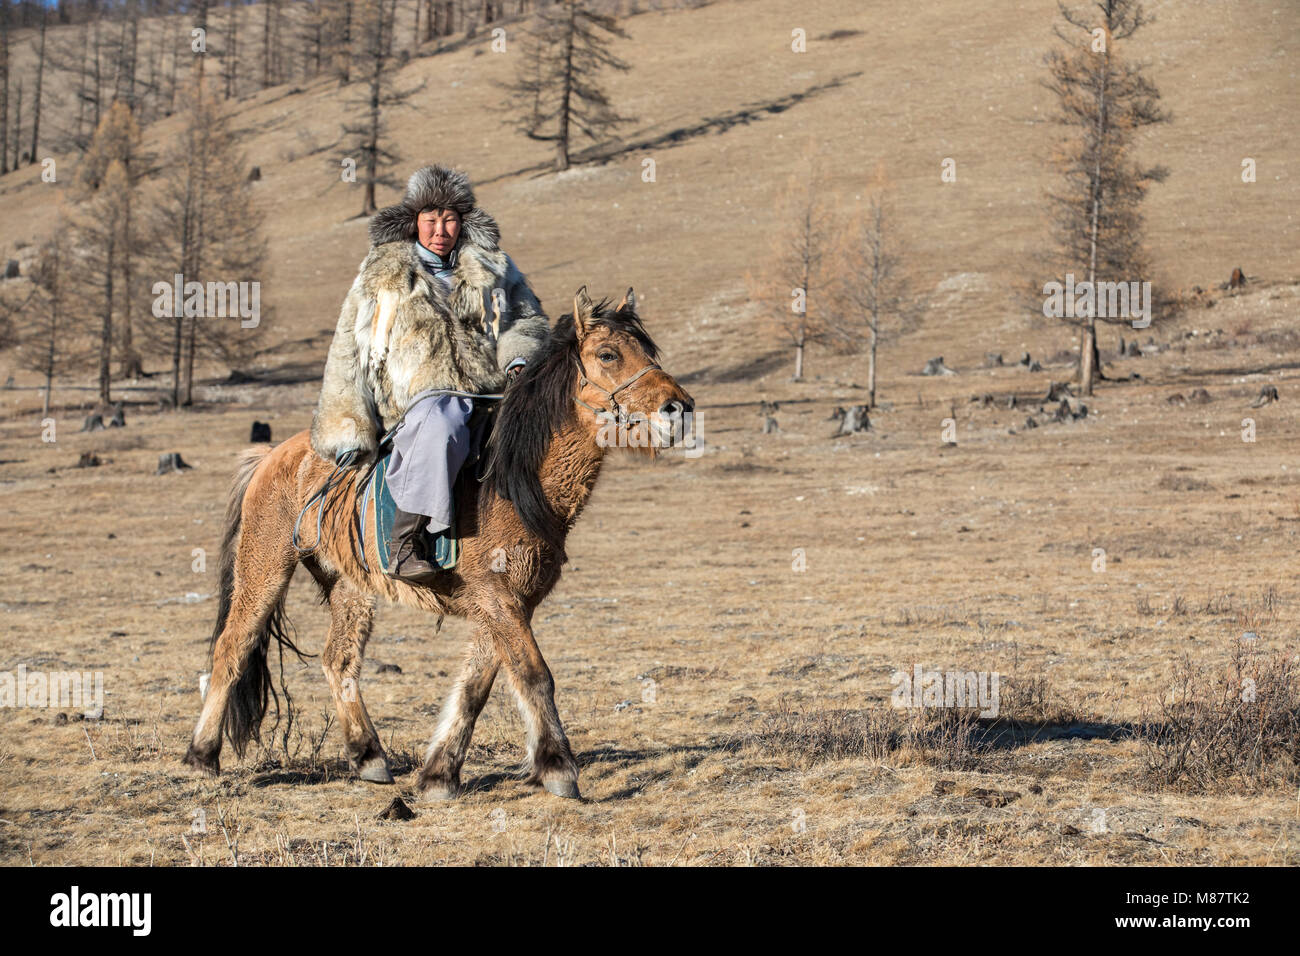 mongolian man wearing a wolf skin jacket, riding his horse in a steppe in Northern Mongolia - Stock Image